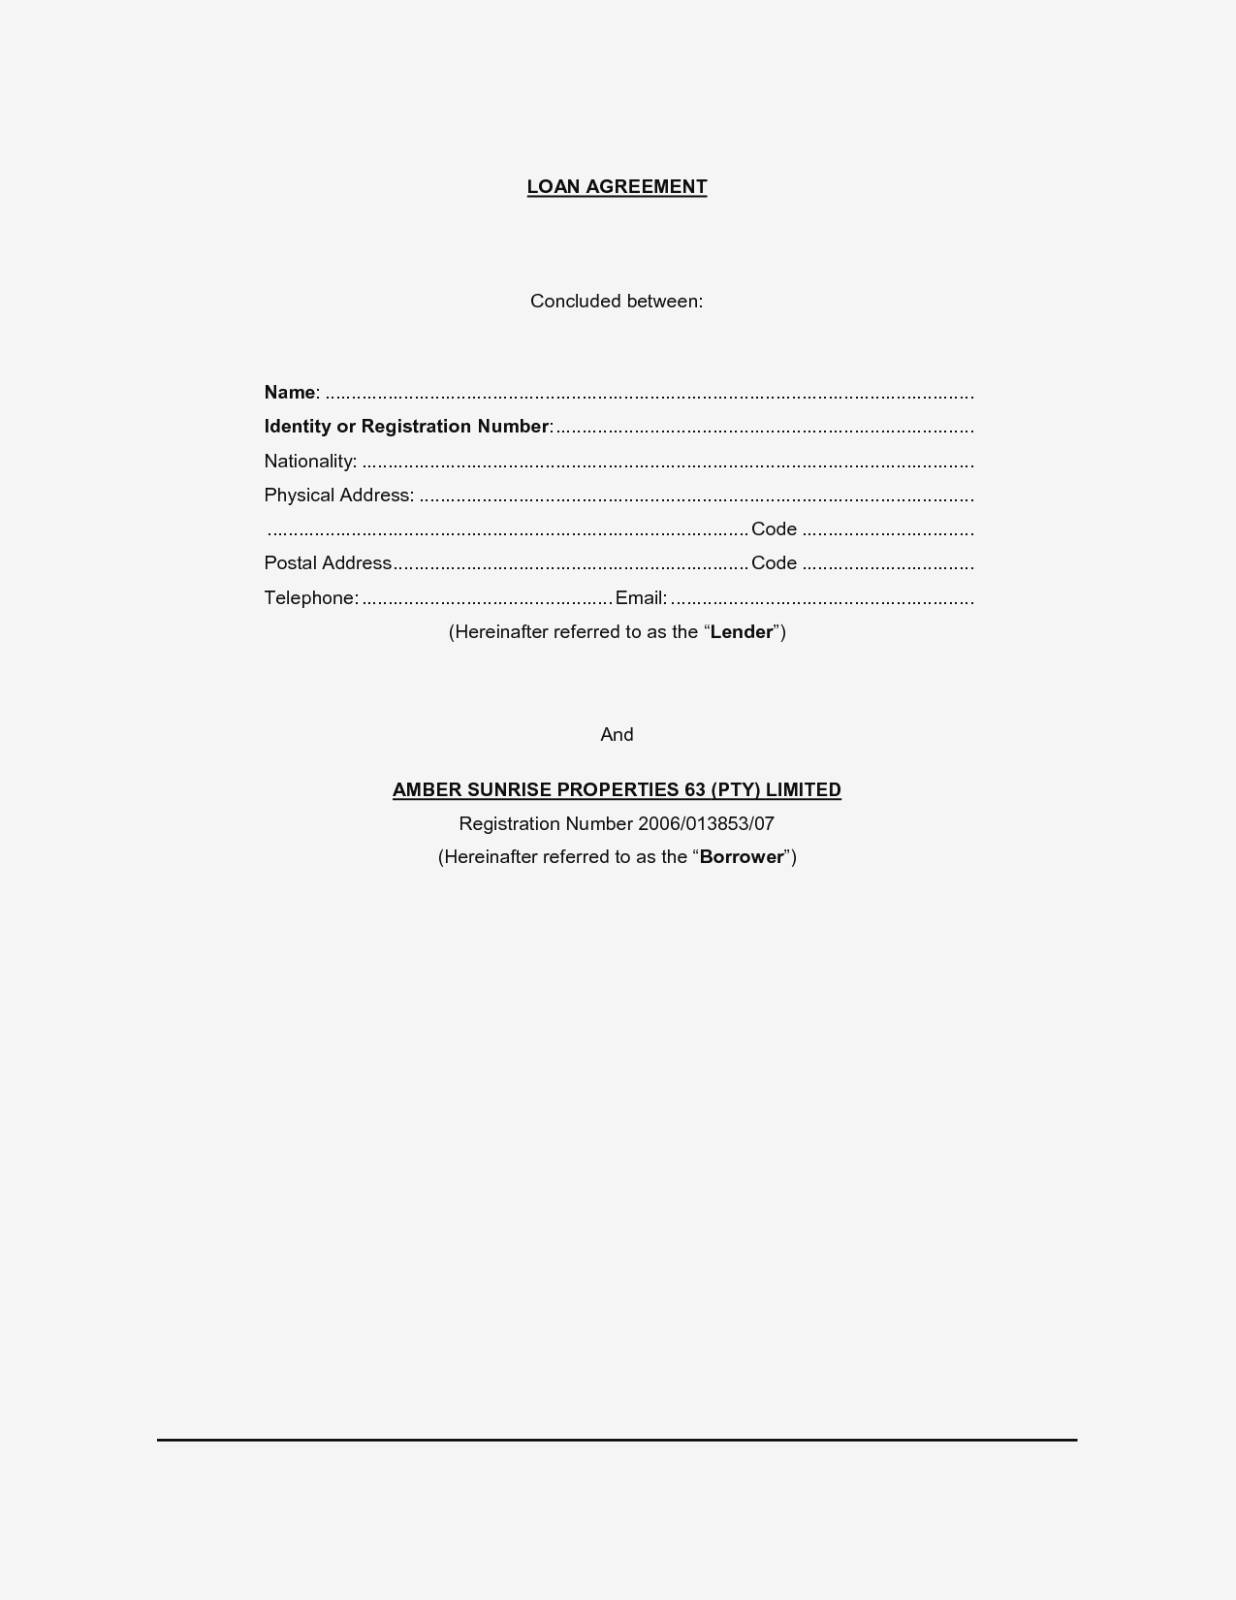 Legal Loan Agreement Template Free